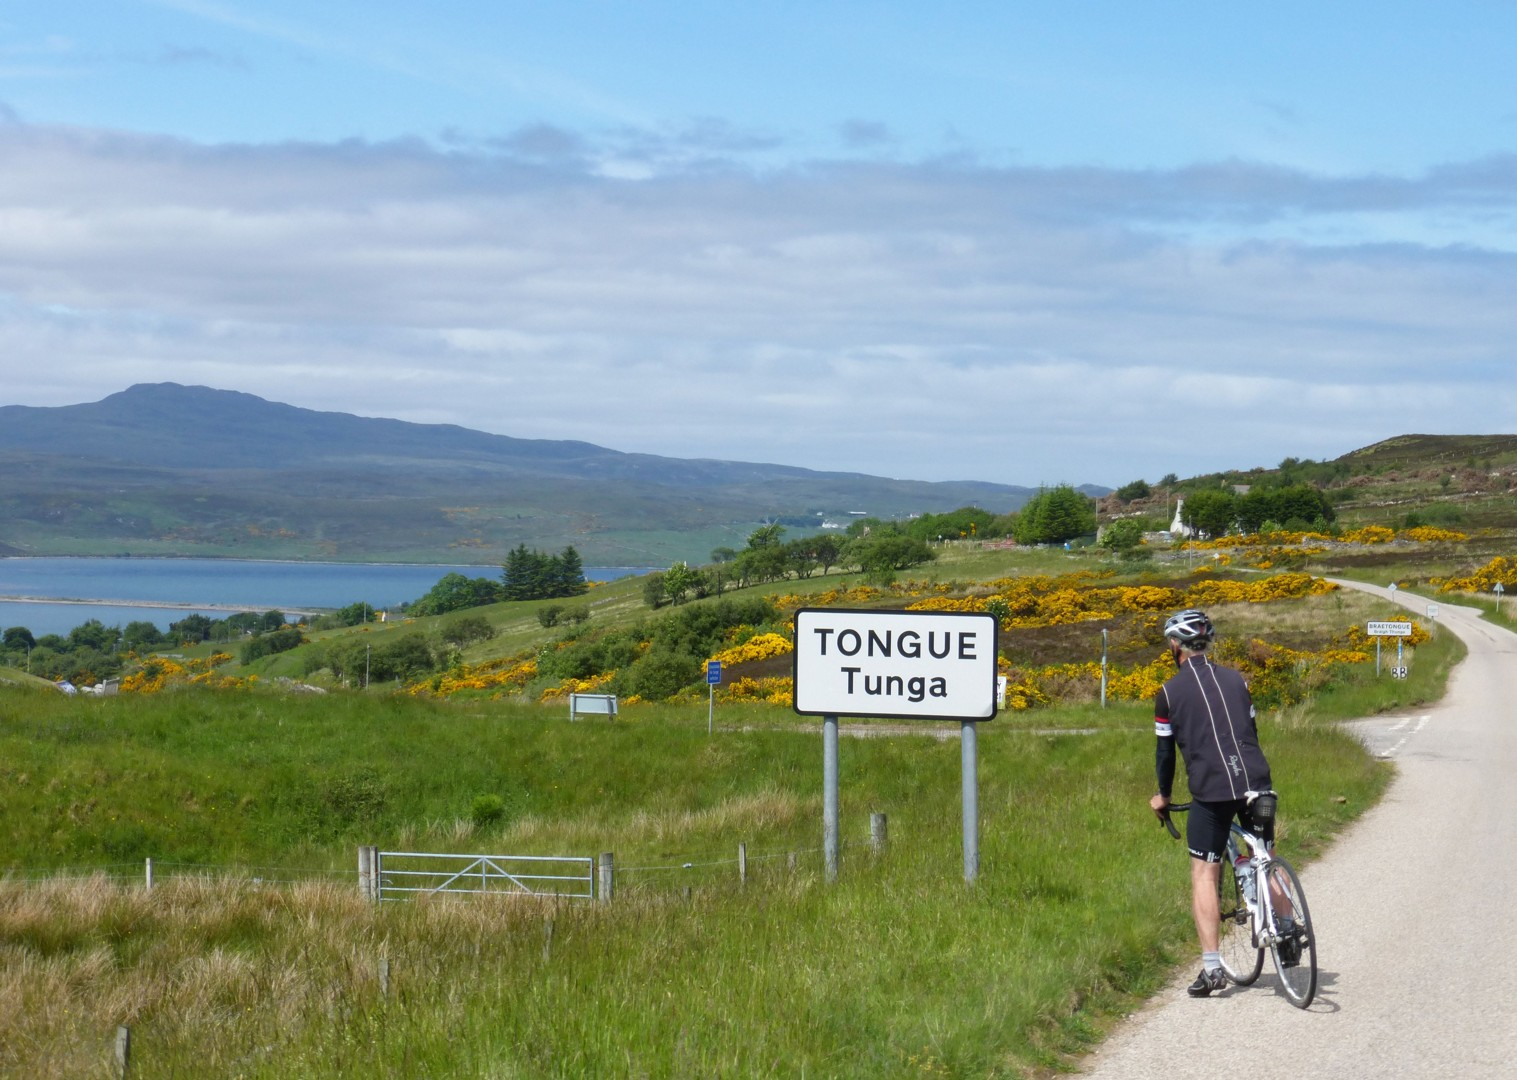 tounge-lands-end-john-ogroats-cycling.jpg - UK - Land's End to John O'Groats Explorer (22 days) - Guided Cycling Holiday - Road Cycling